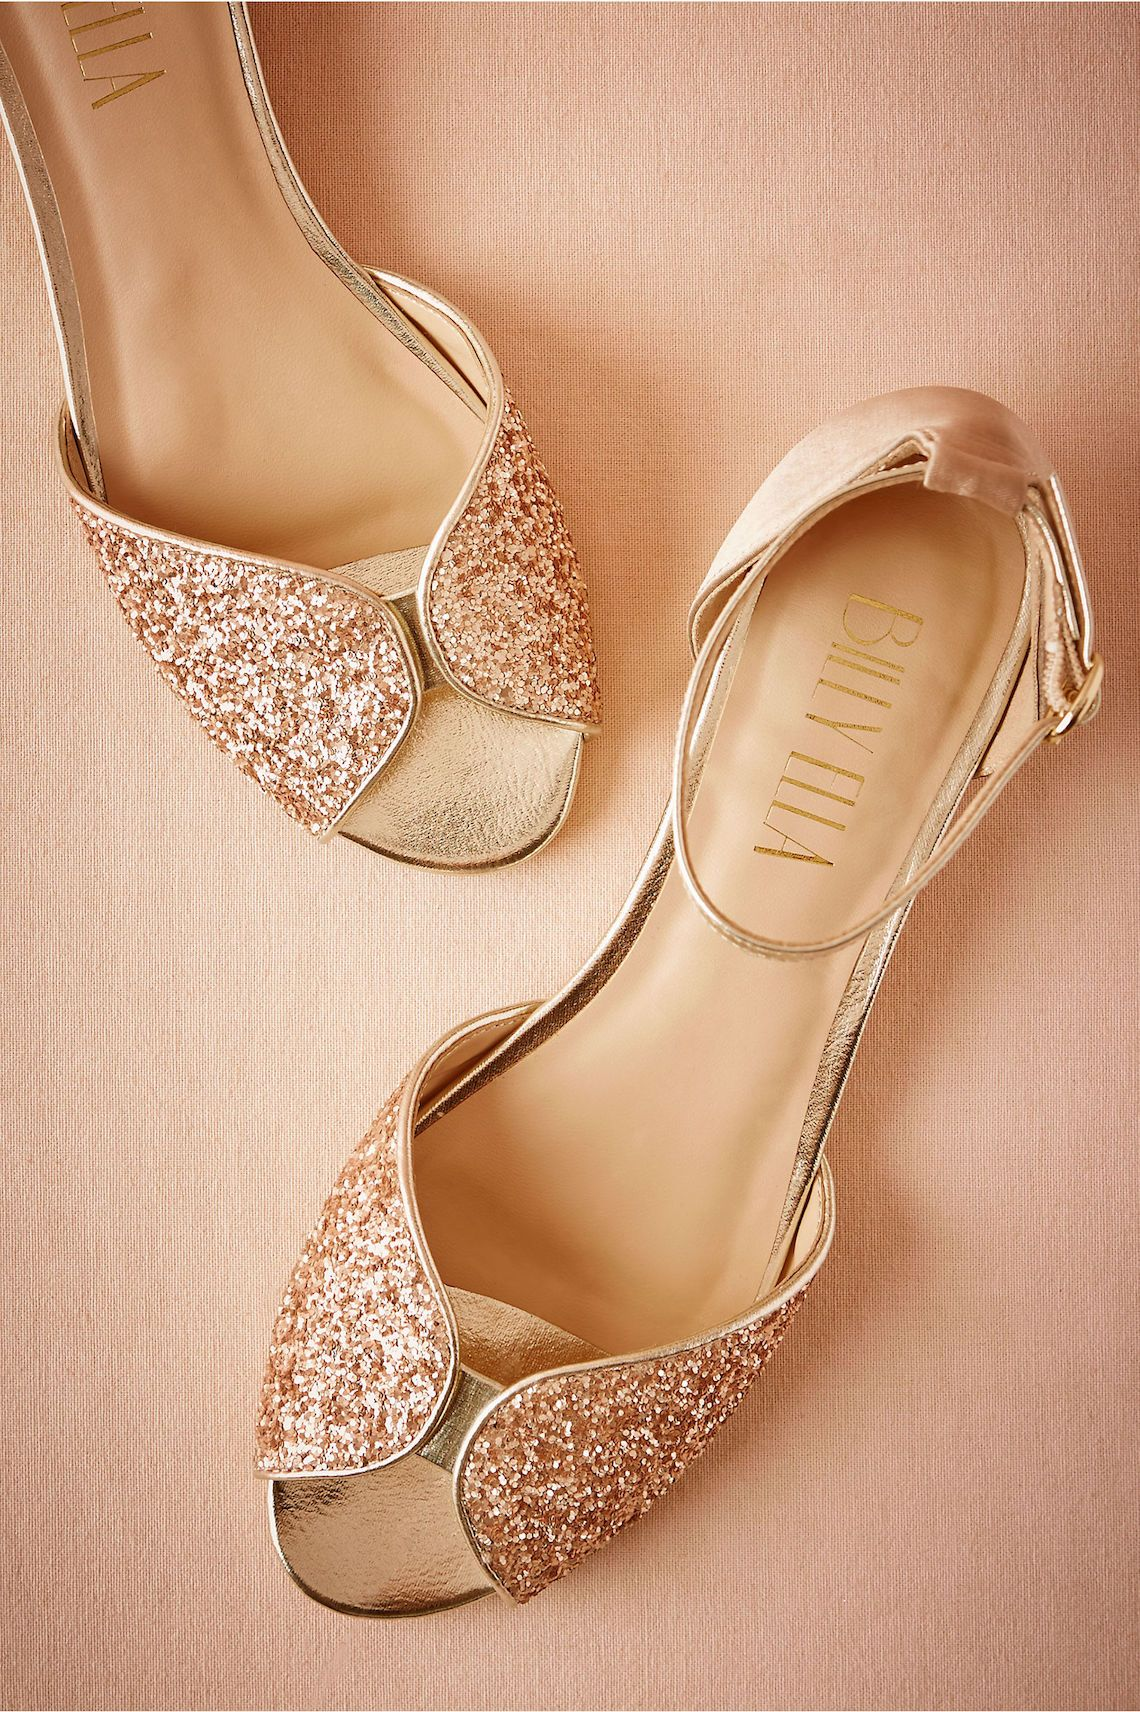 2a052fc7355 10 Flat Wedding Shoes (That Are Just As Chic As Heels)